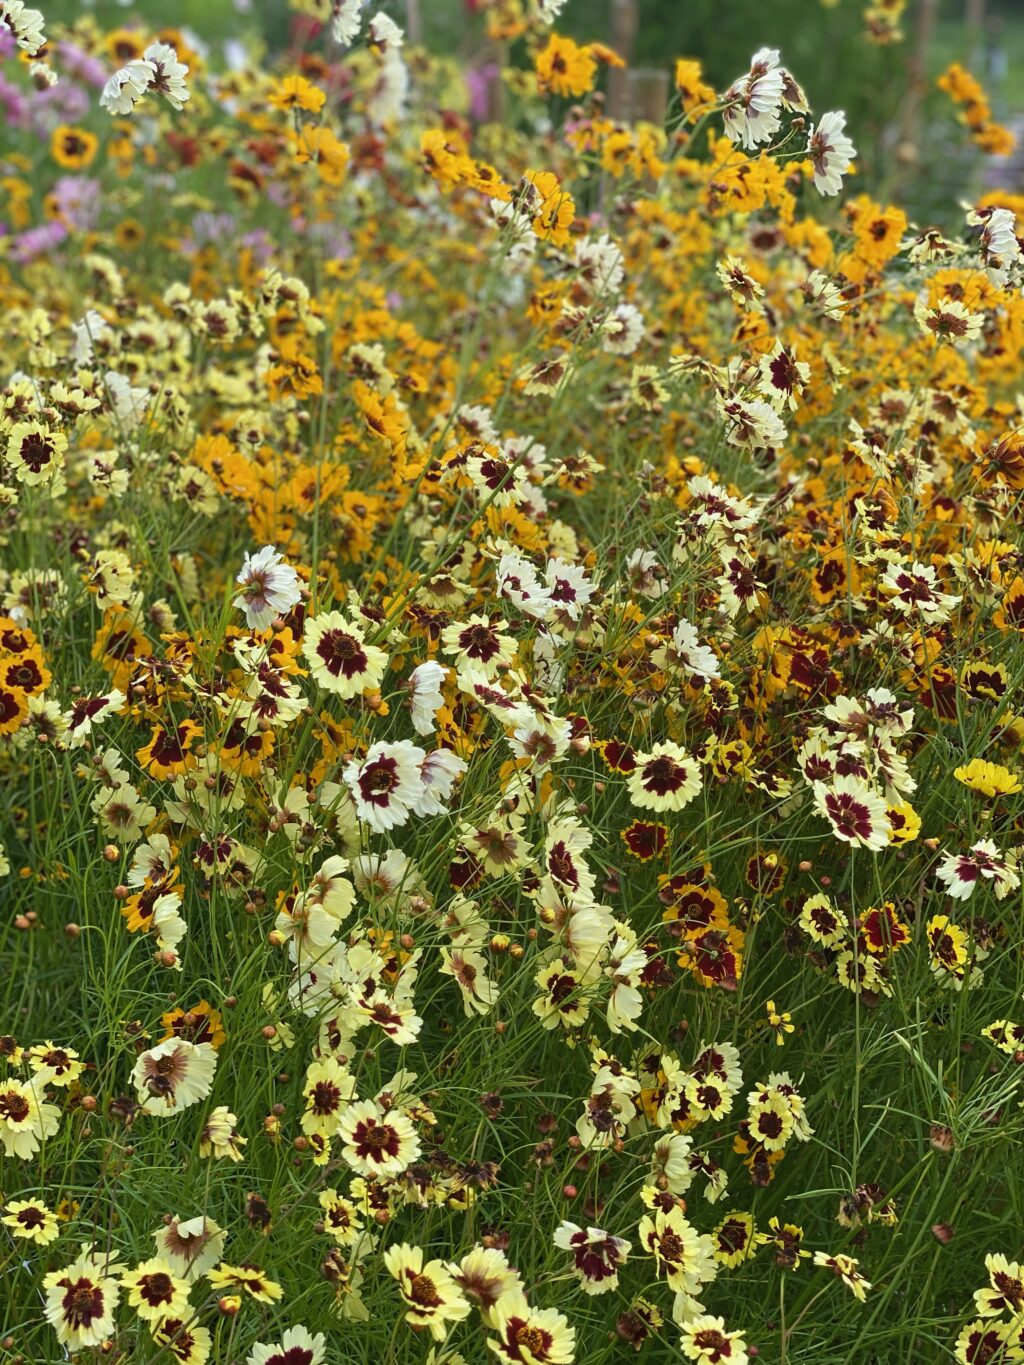 Yellow and white Coreopsis flowers blooming at Drowsy Bee Flowers in Suffolk